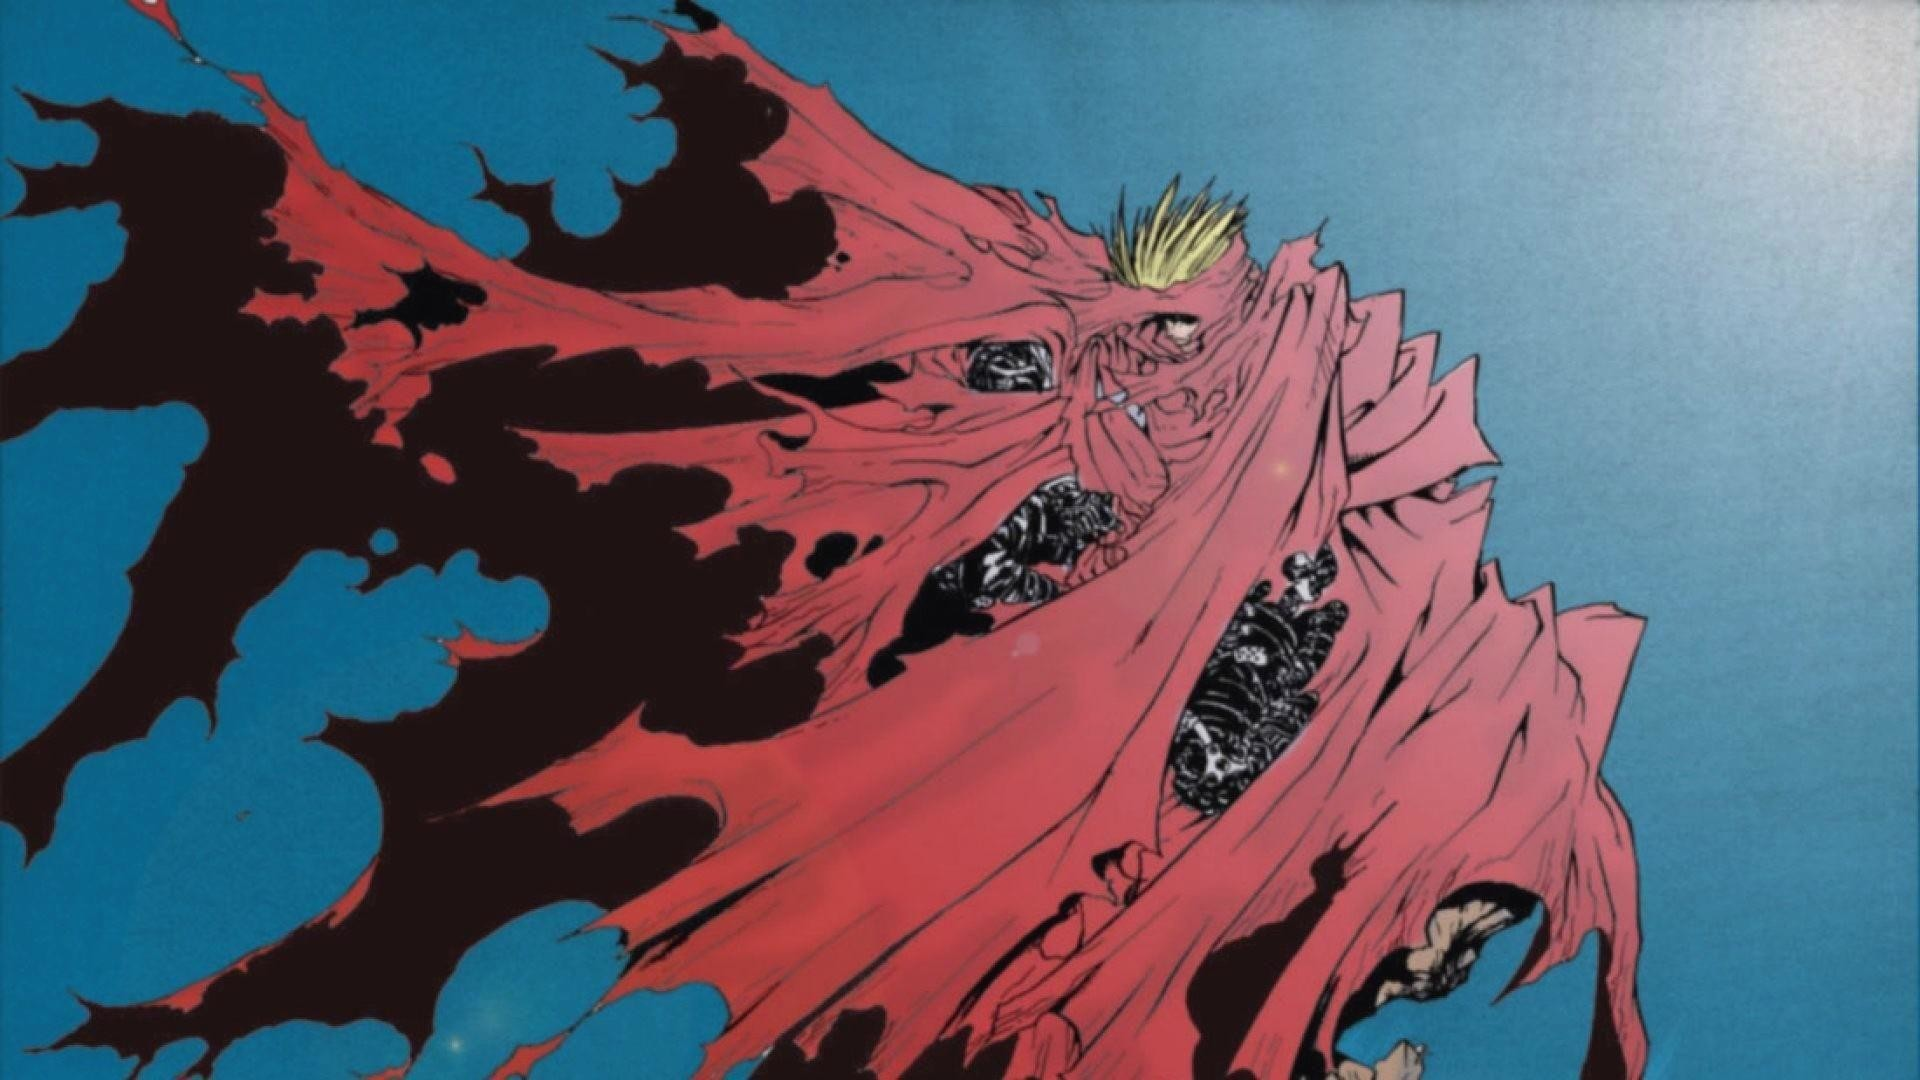 Res: 1920x1080, Trigun Wallpapers 1 - 1920 X 1080